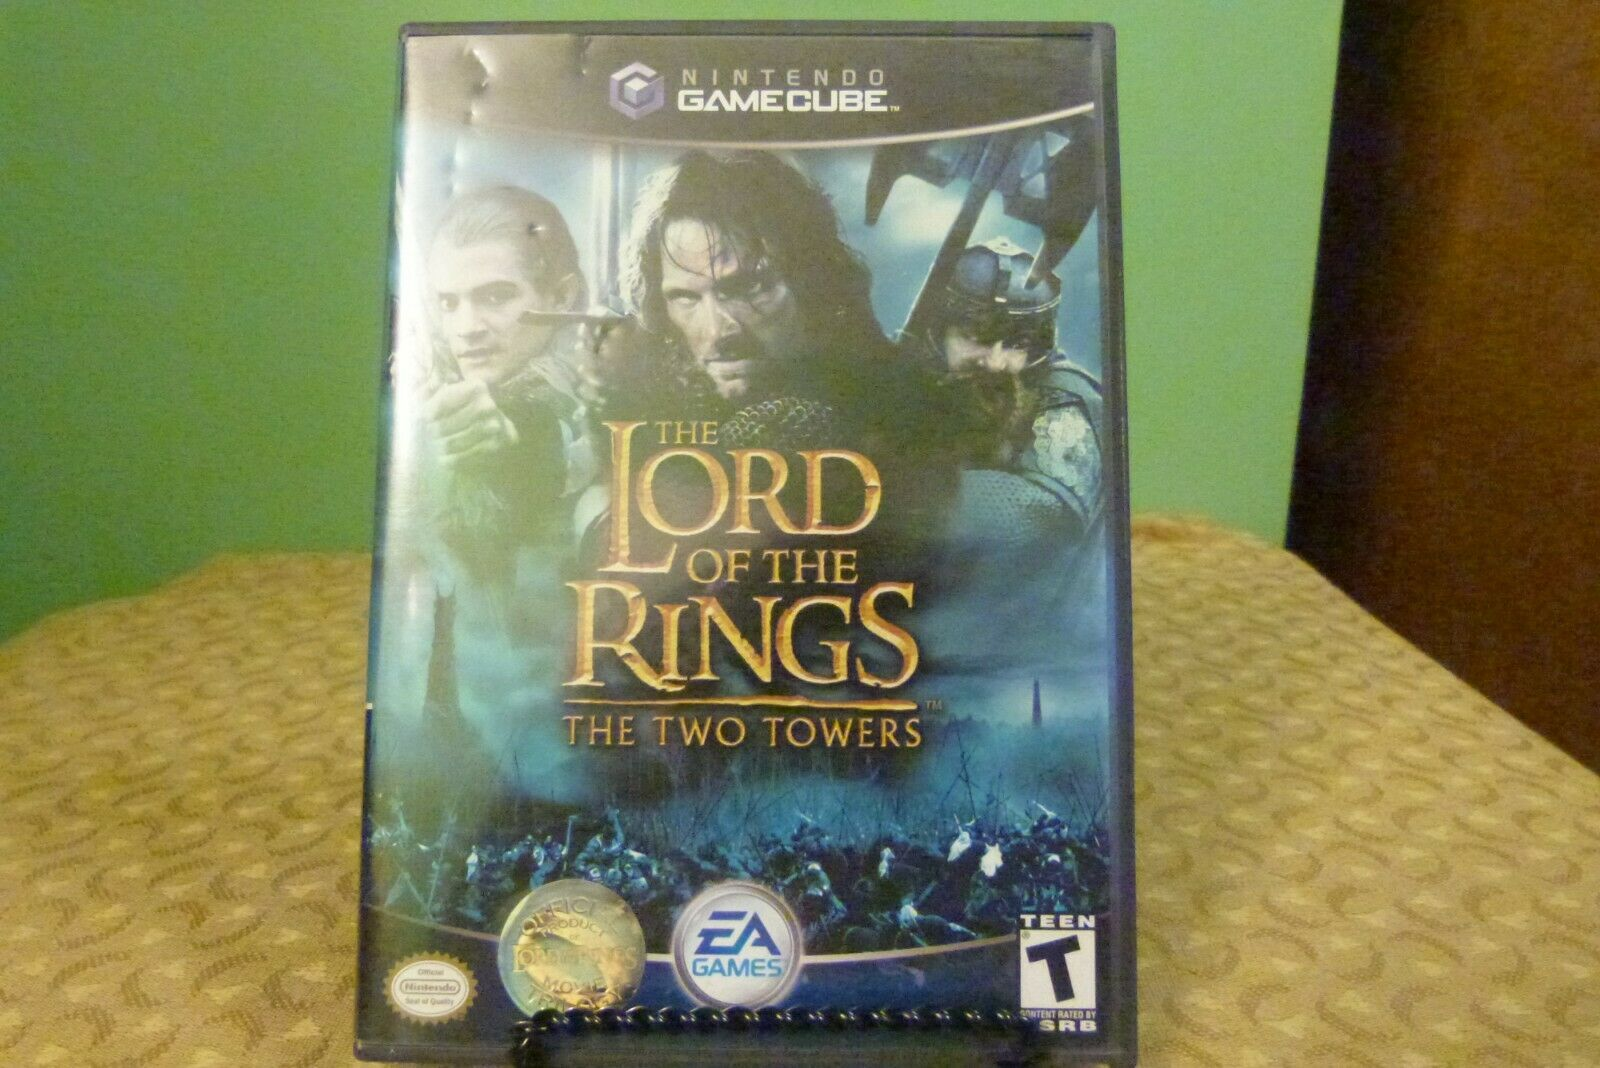 Primary image for Lord of the Rings: The Two Towers Player's Choice (Nintendo GameCube, 2004) VG